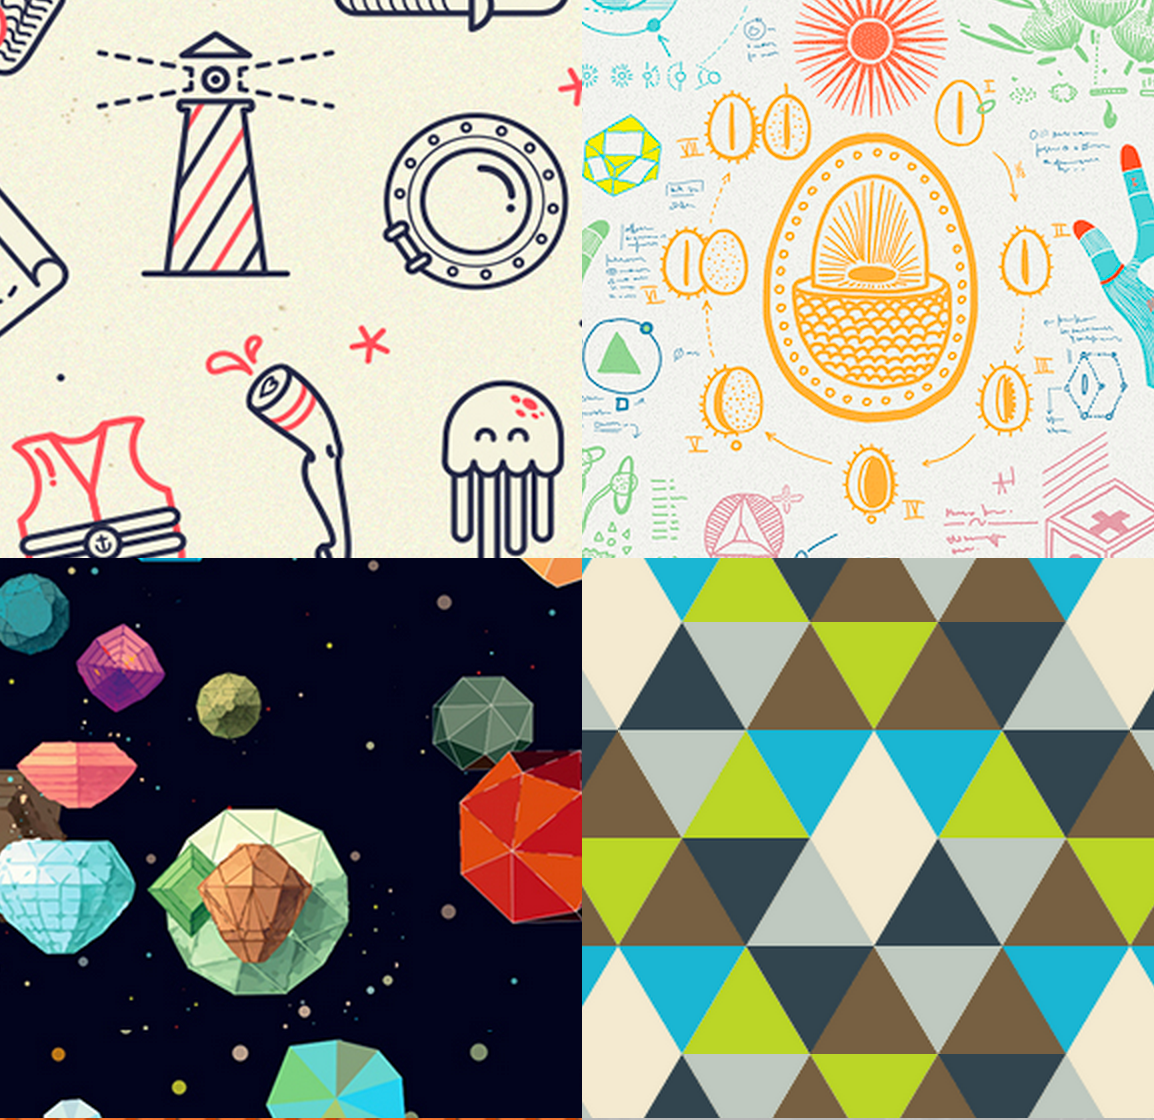 23 Tools and Resources to Create Images for Social Media image patternlibrary3